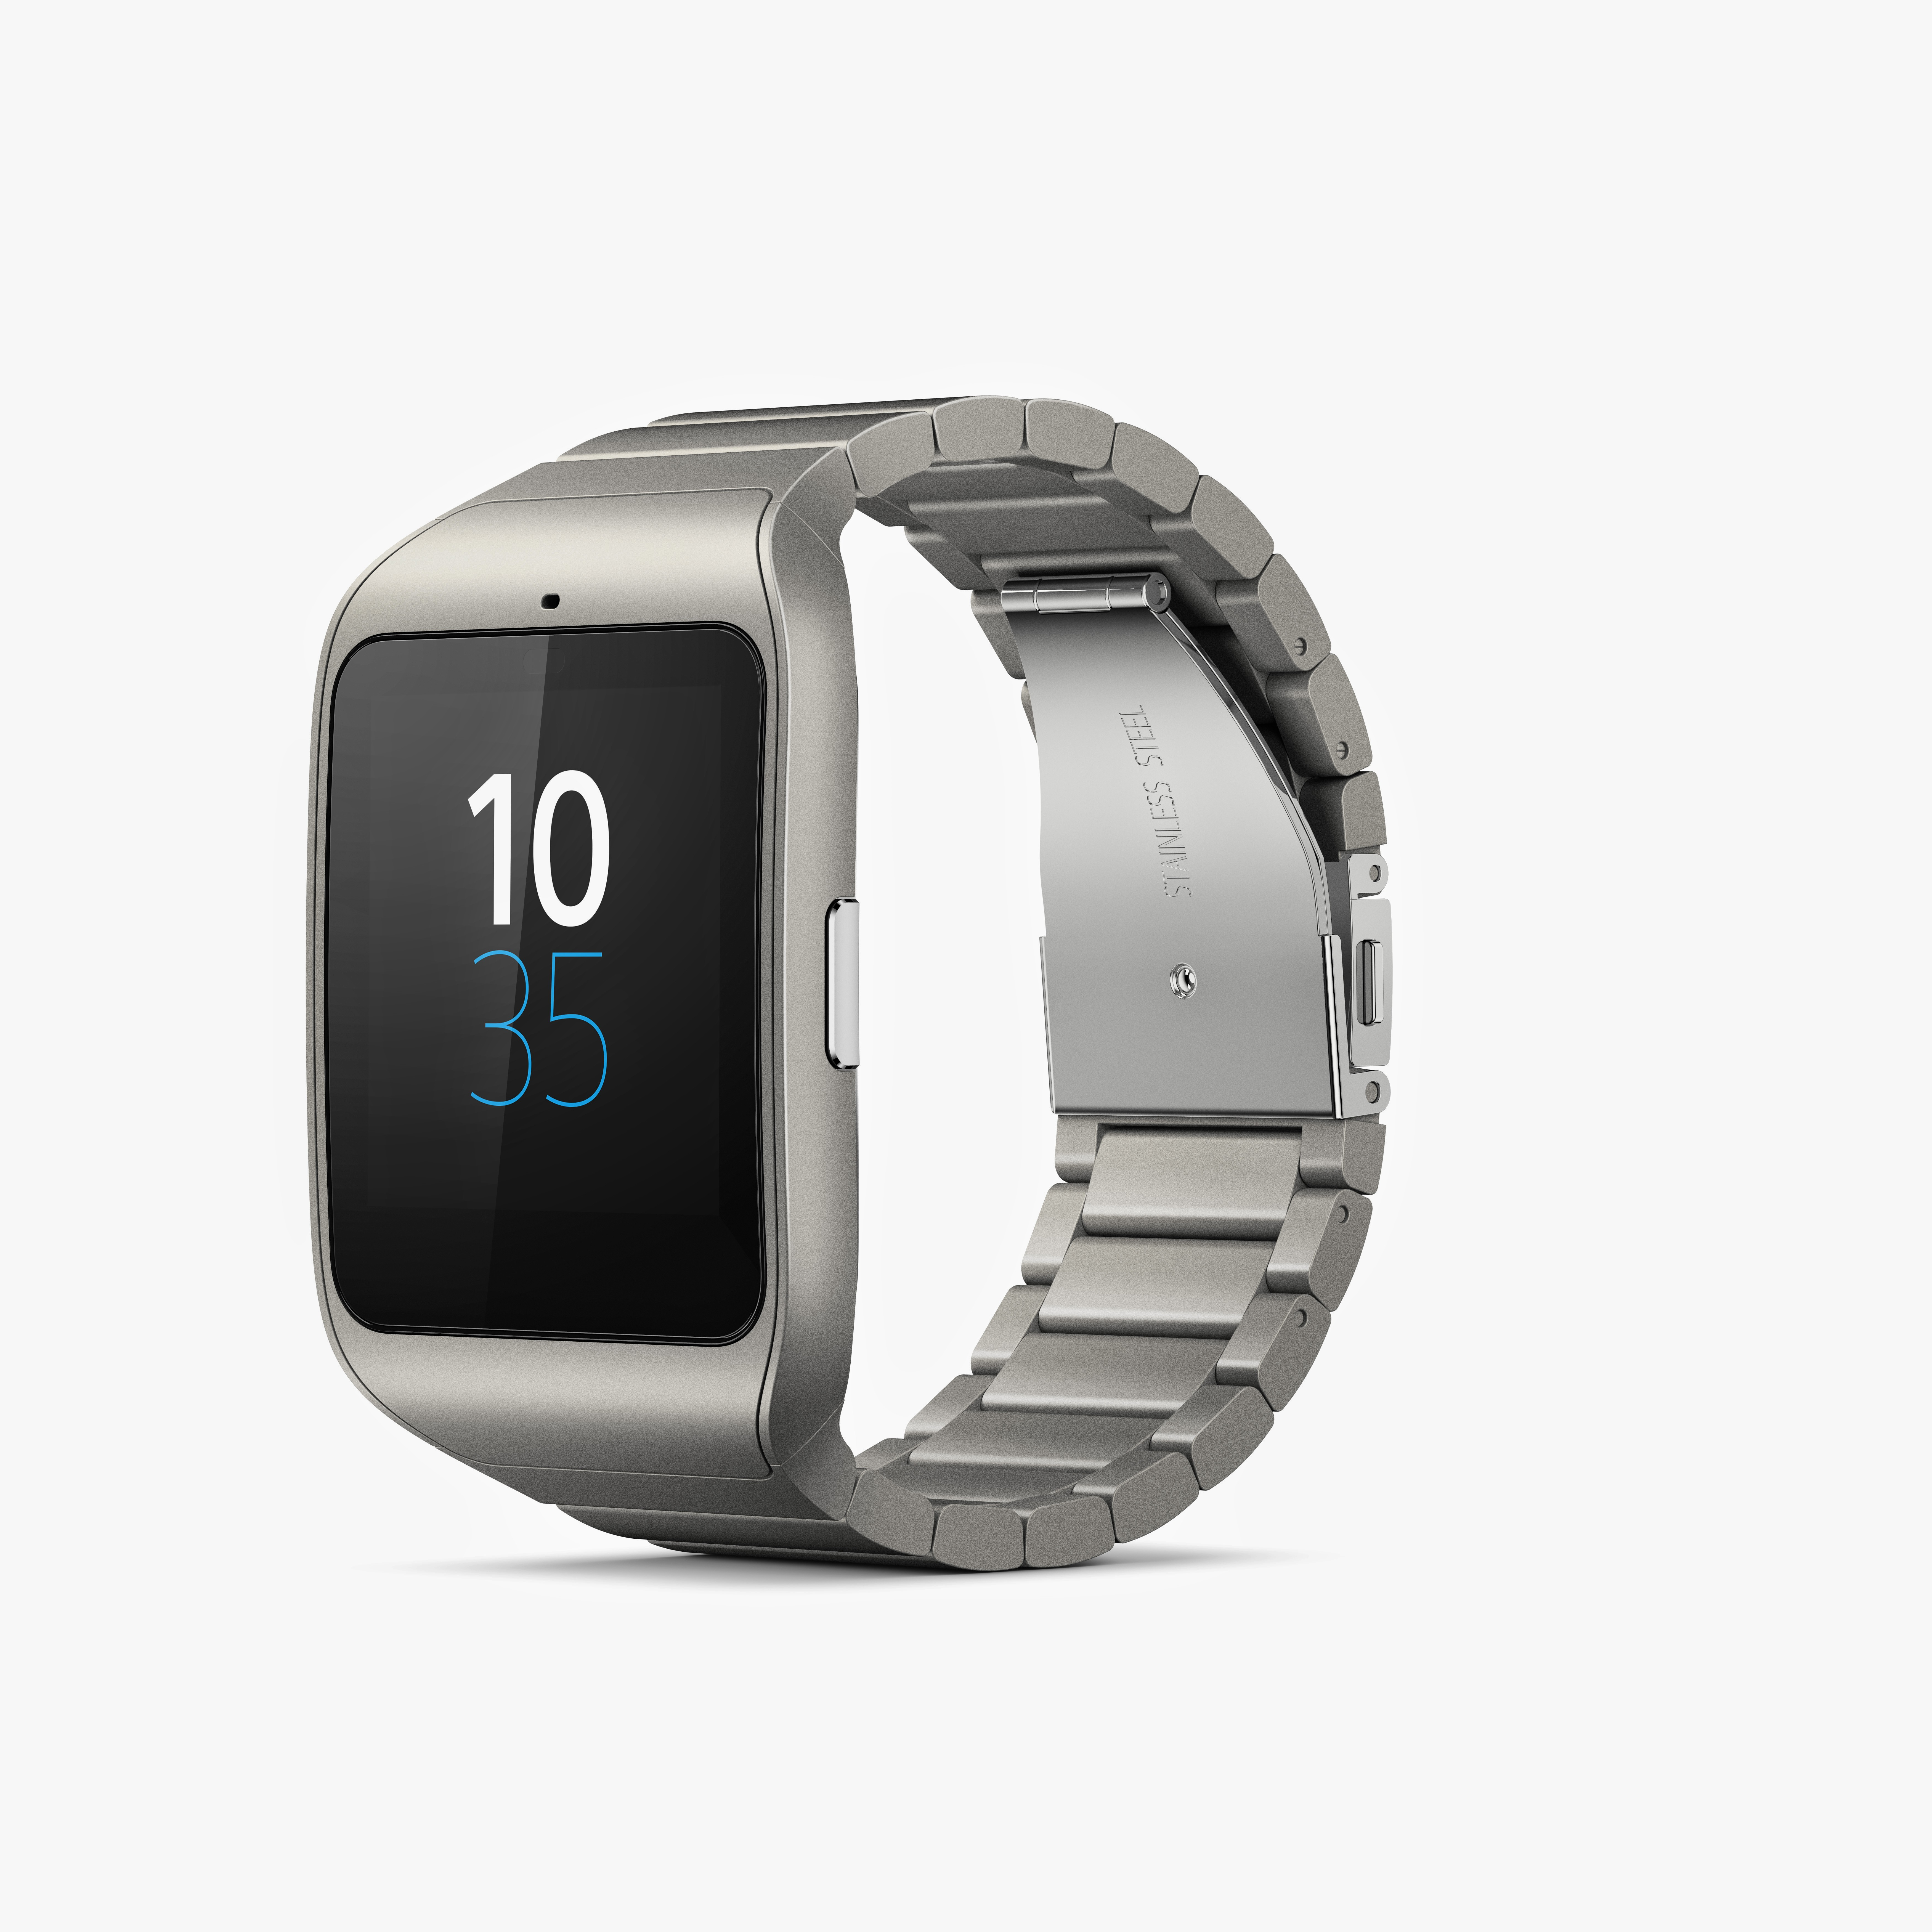 CES - Sony update the Smartwatch 3